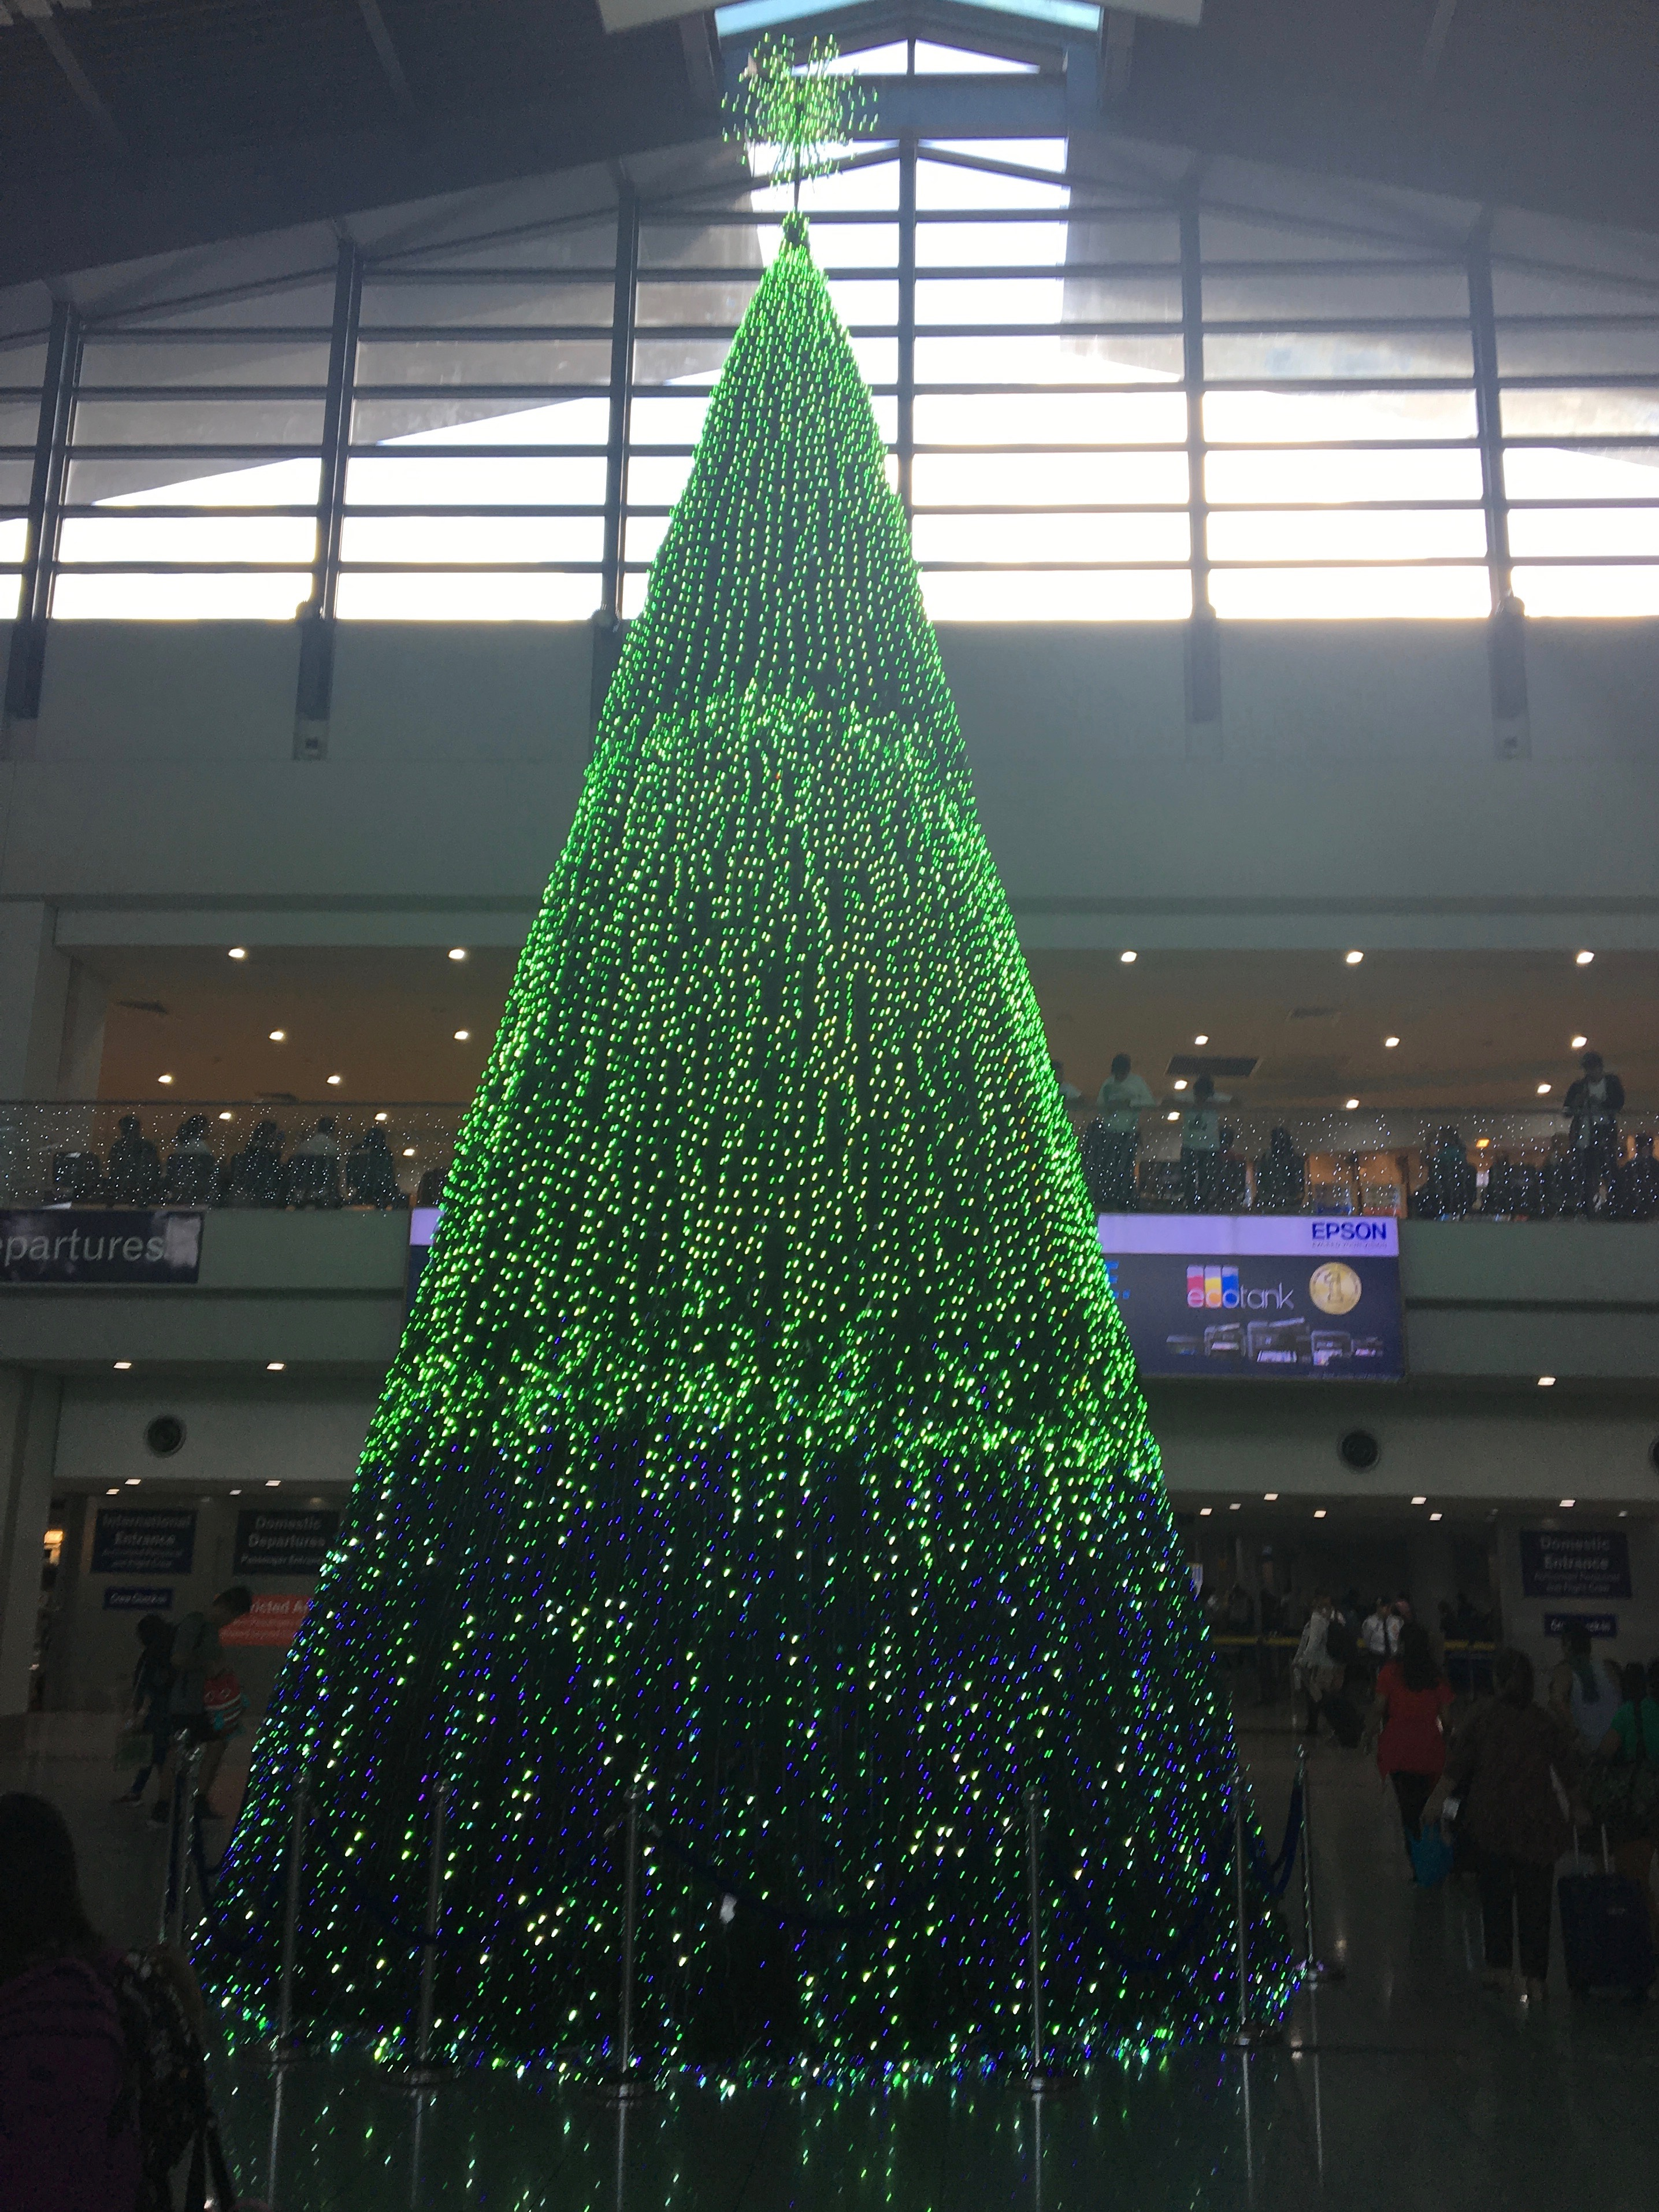 Christmas Is Over.So You Think Christmas Is Over Go To The Philippines